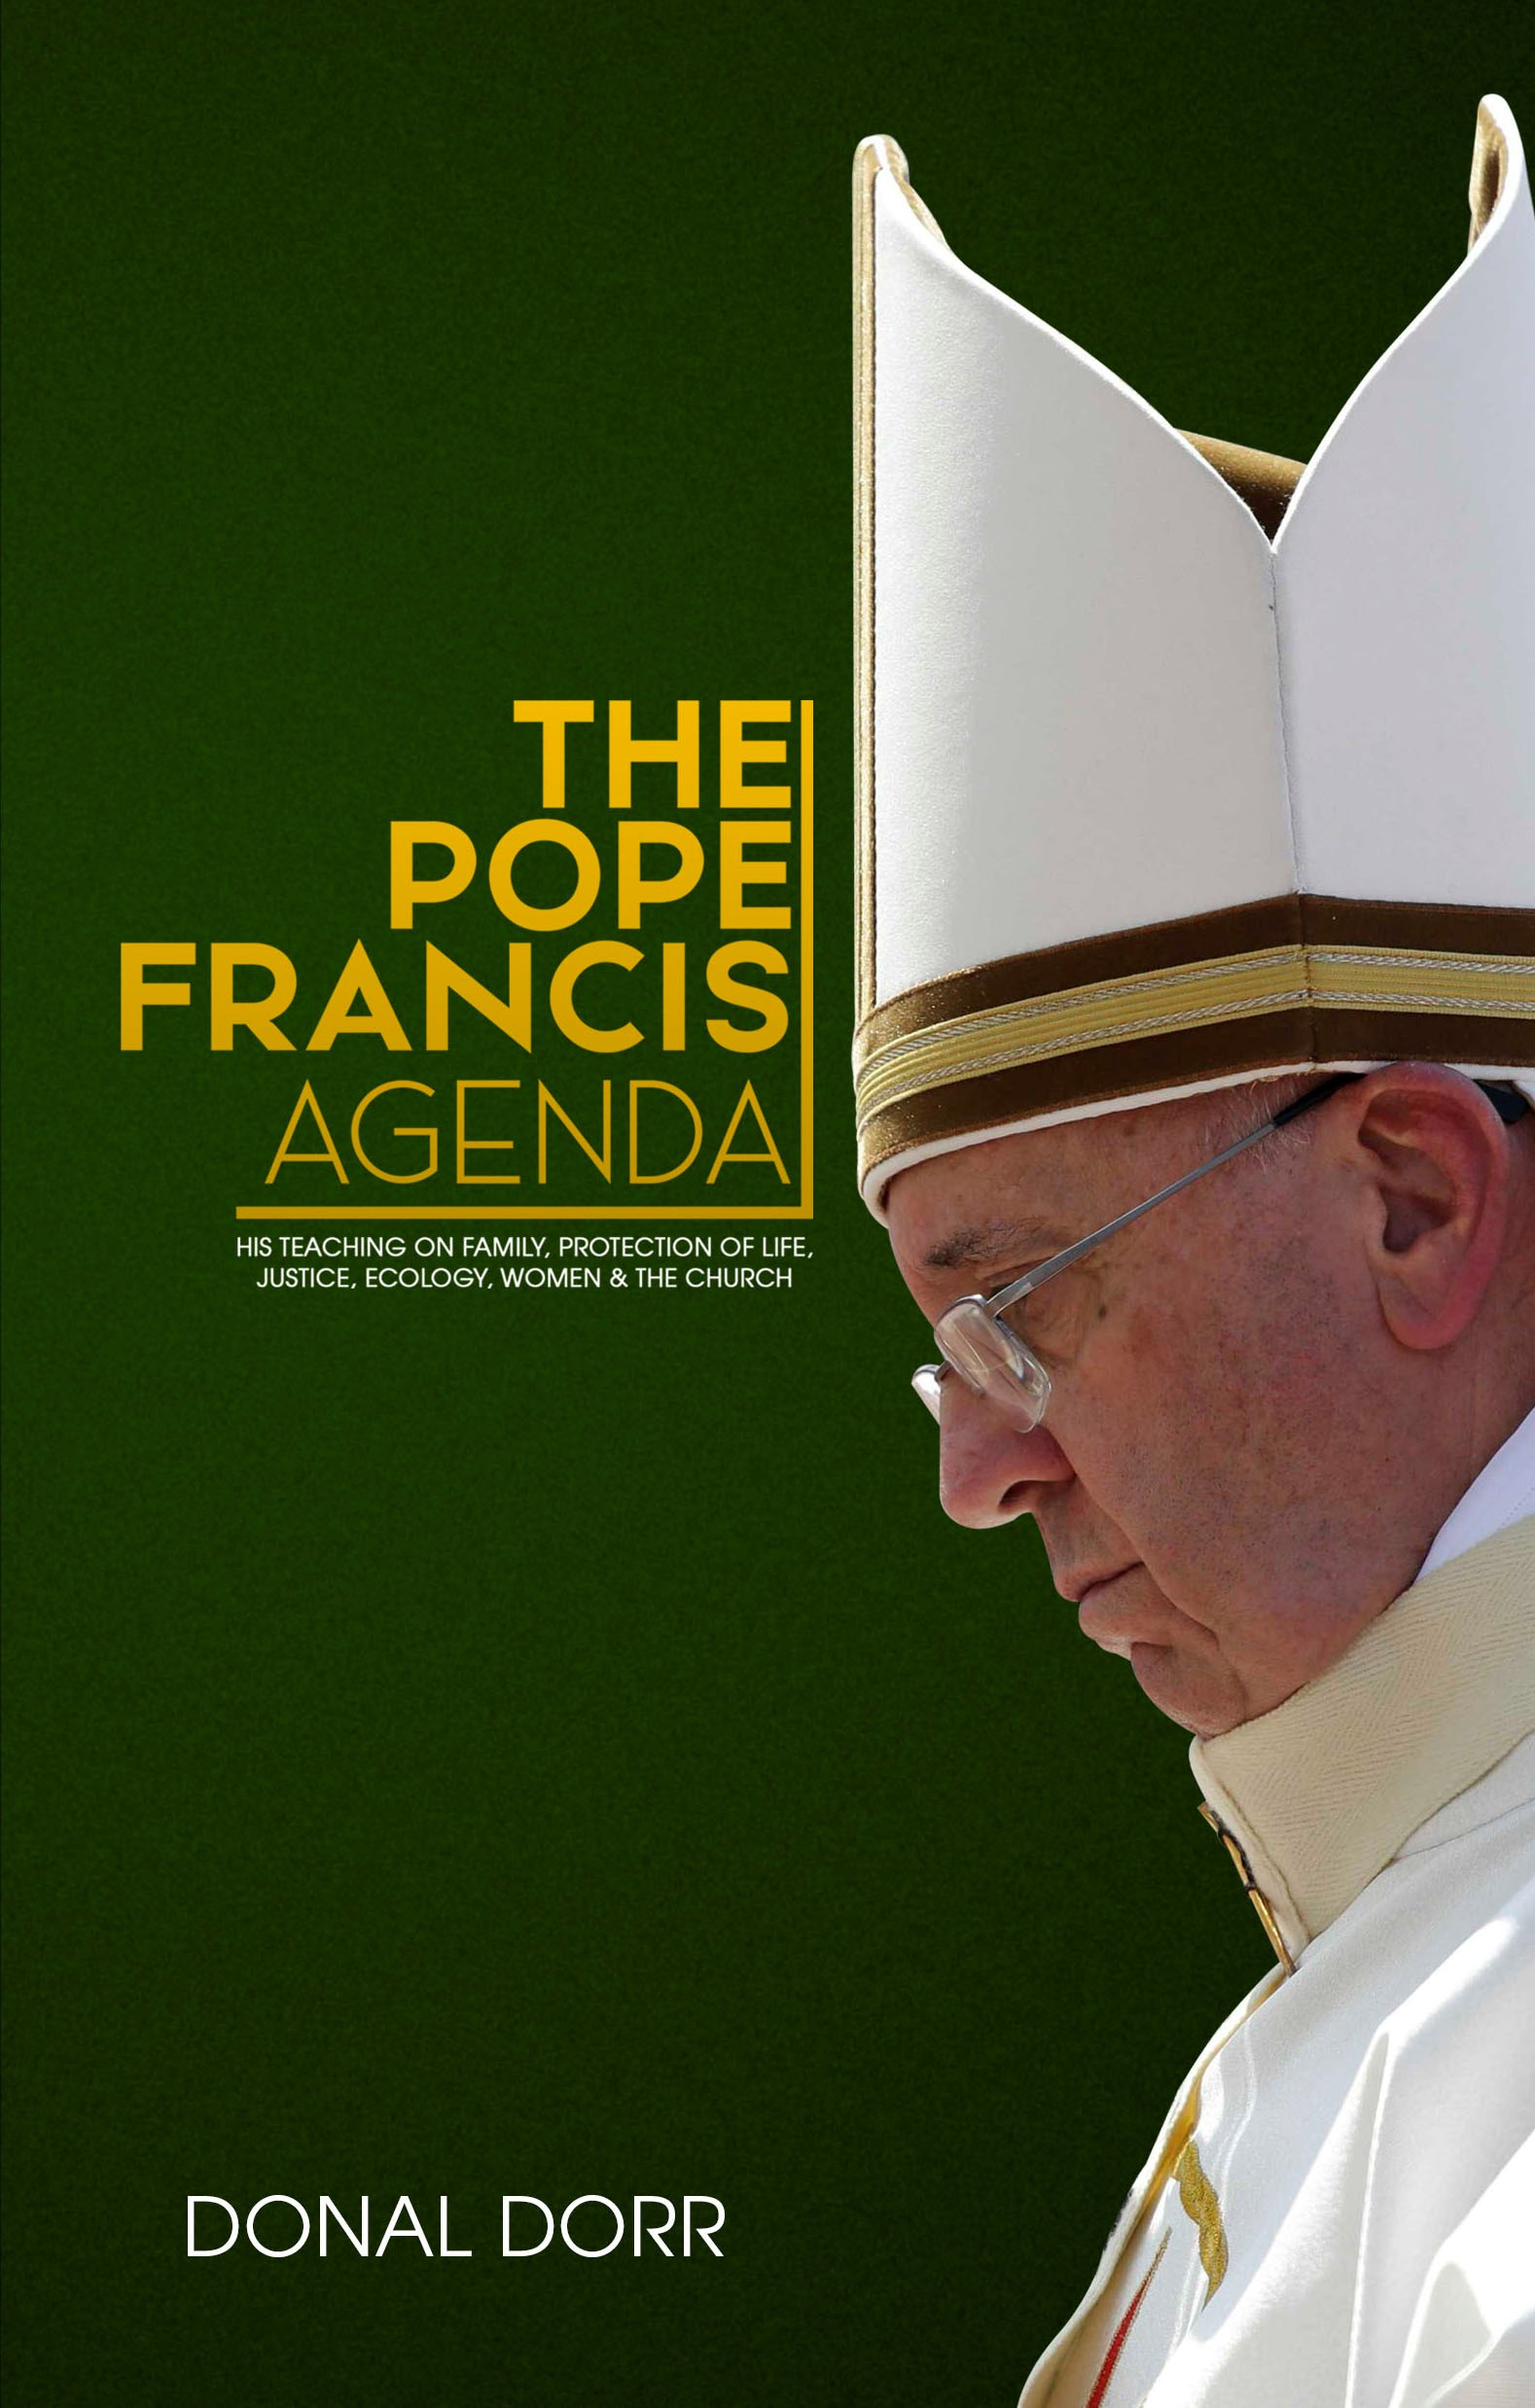 The Pope Francis Agenda